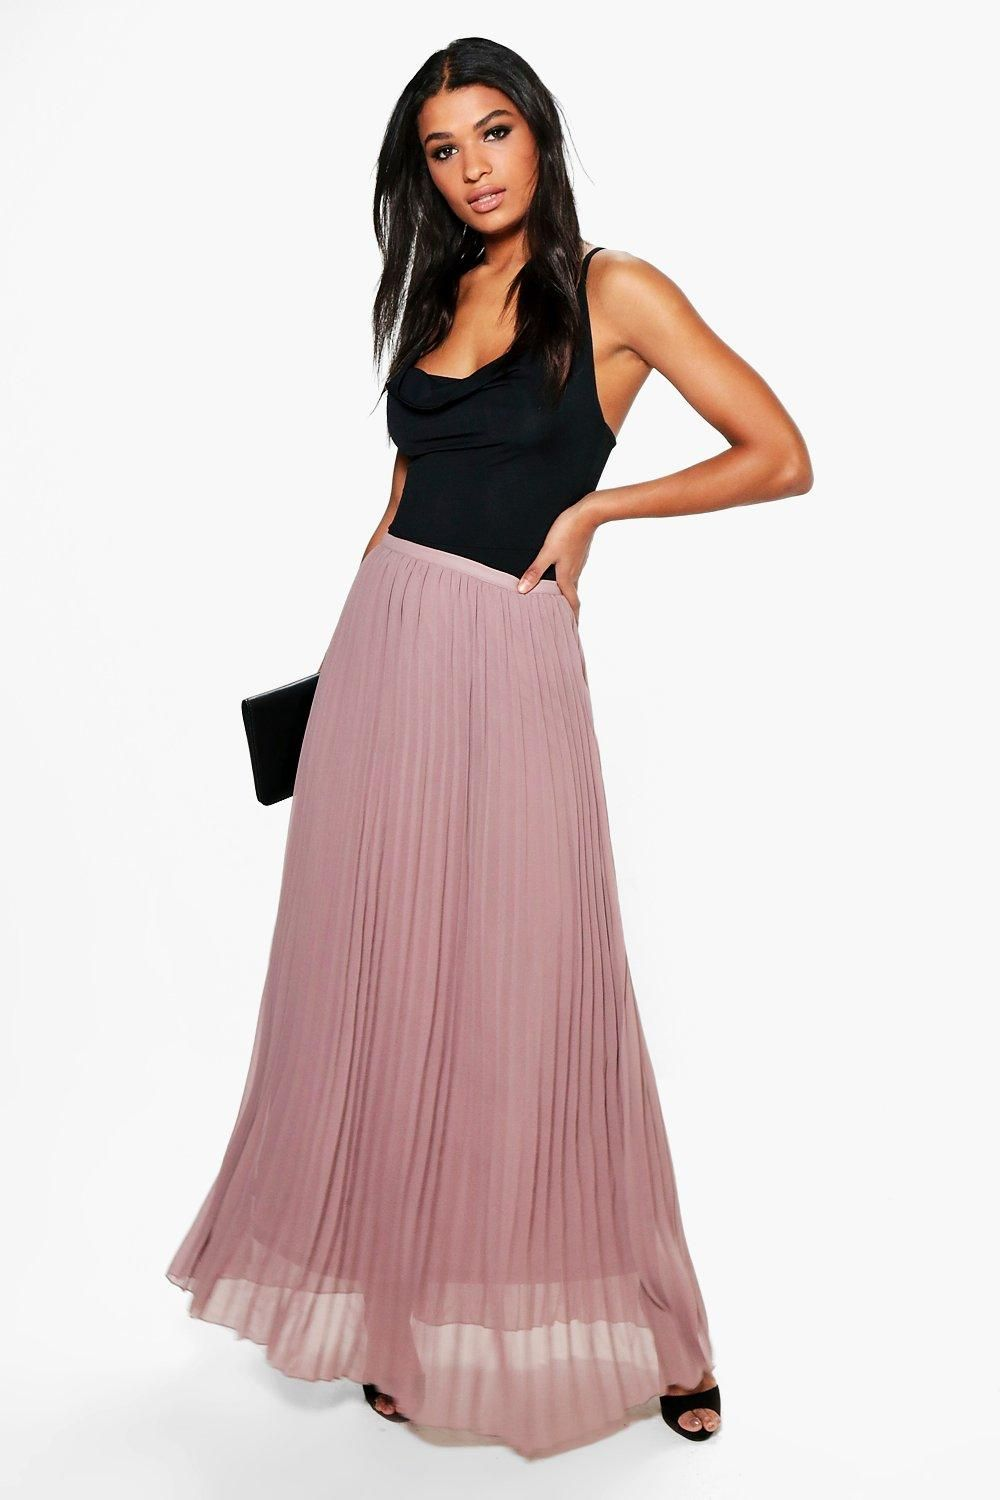 Maxi Chiffon skirt pinterest pictures advise dress in winter in 2019